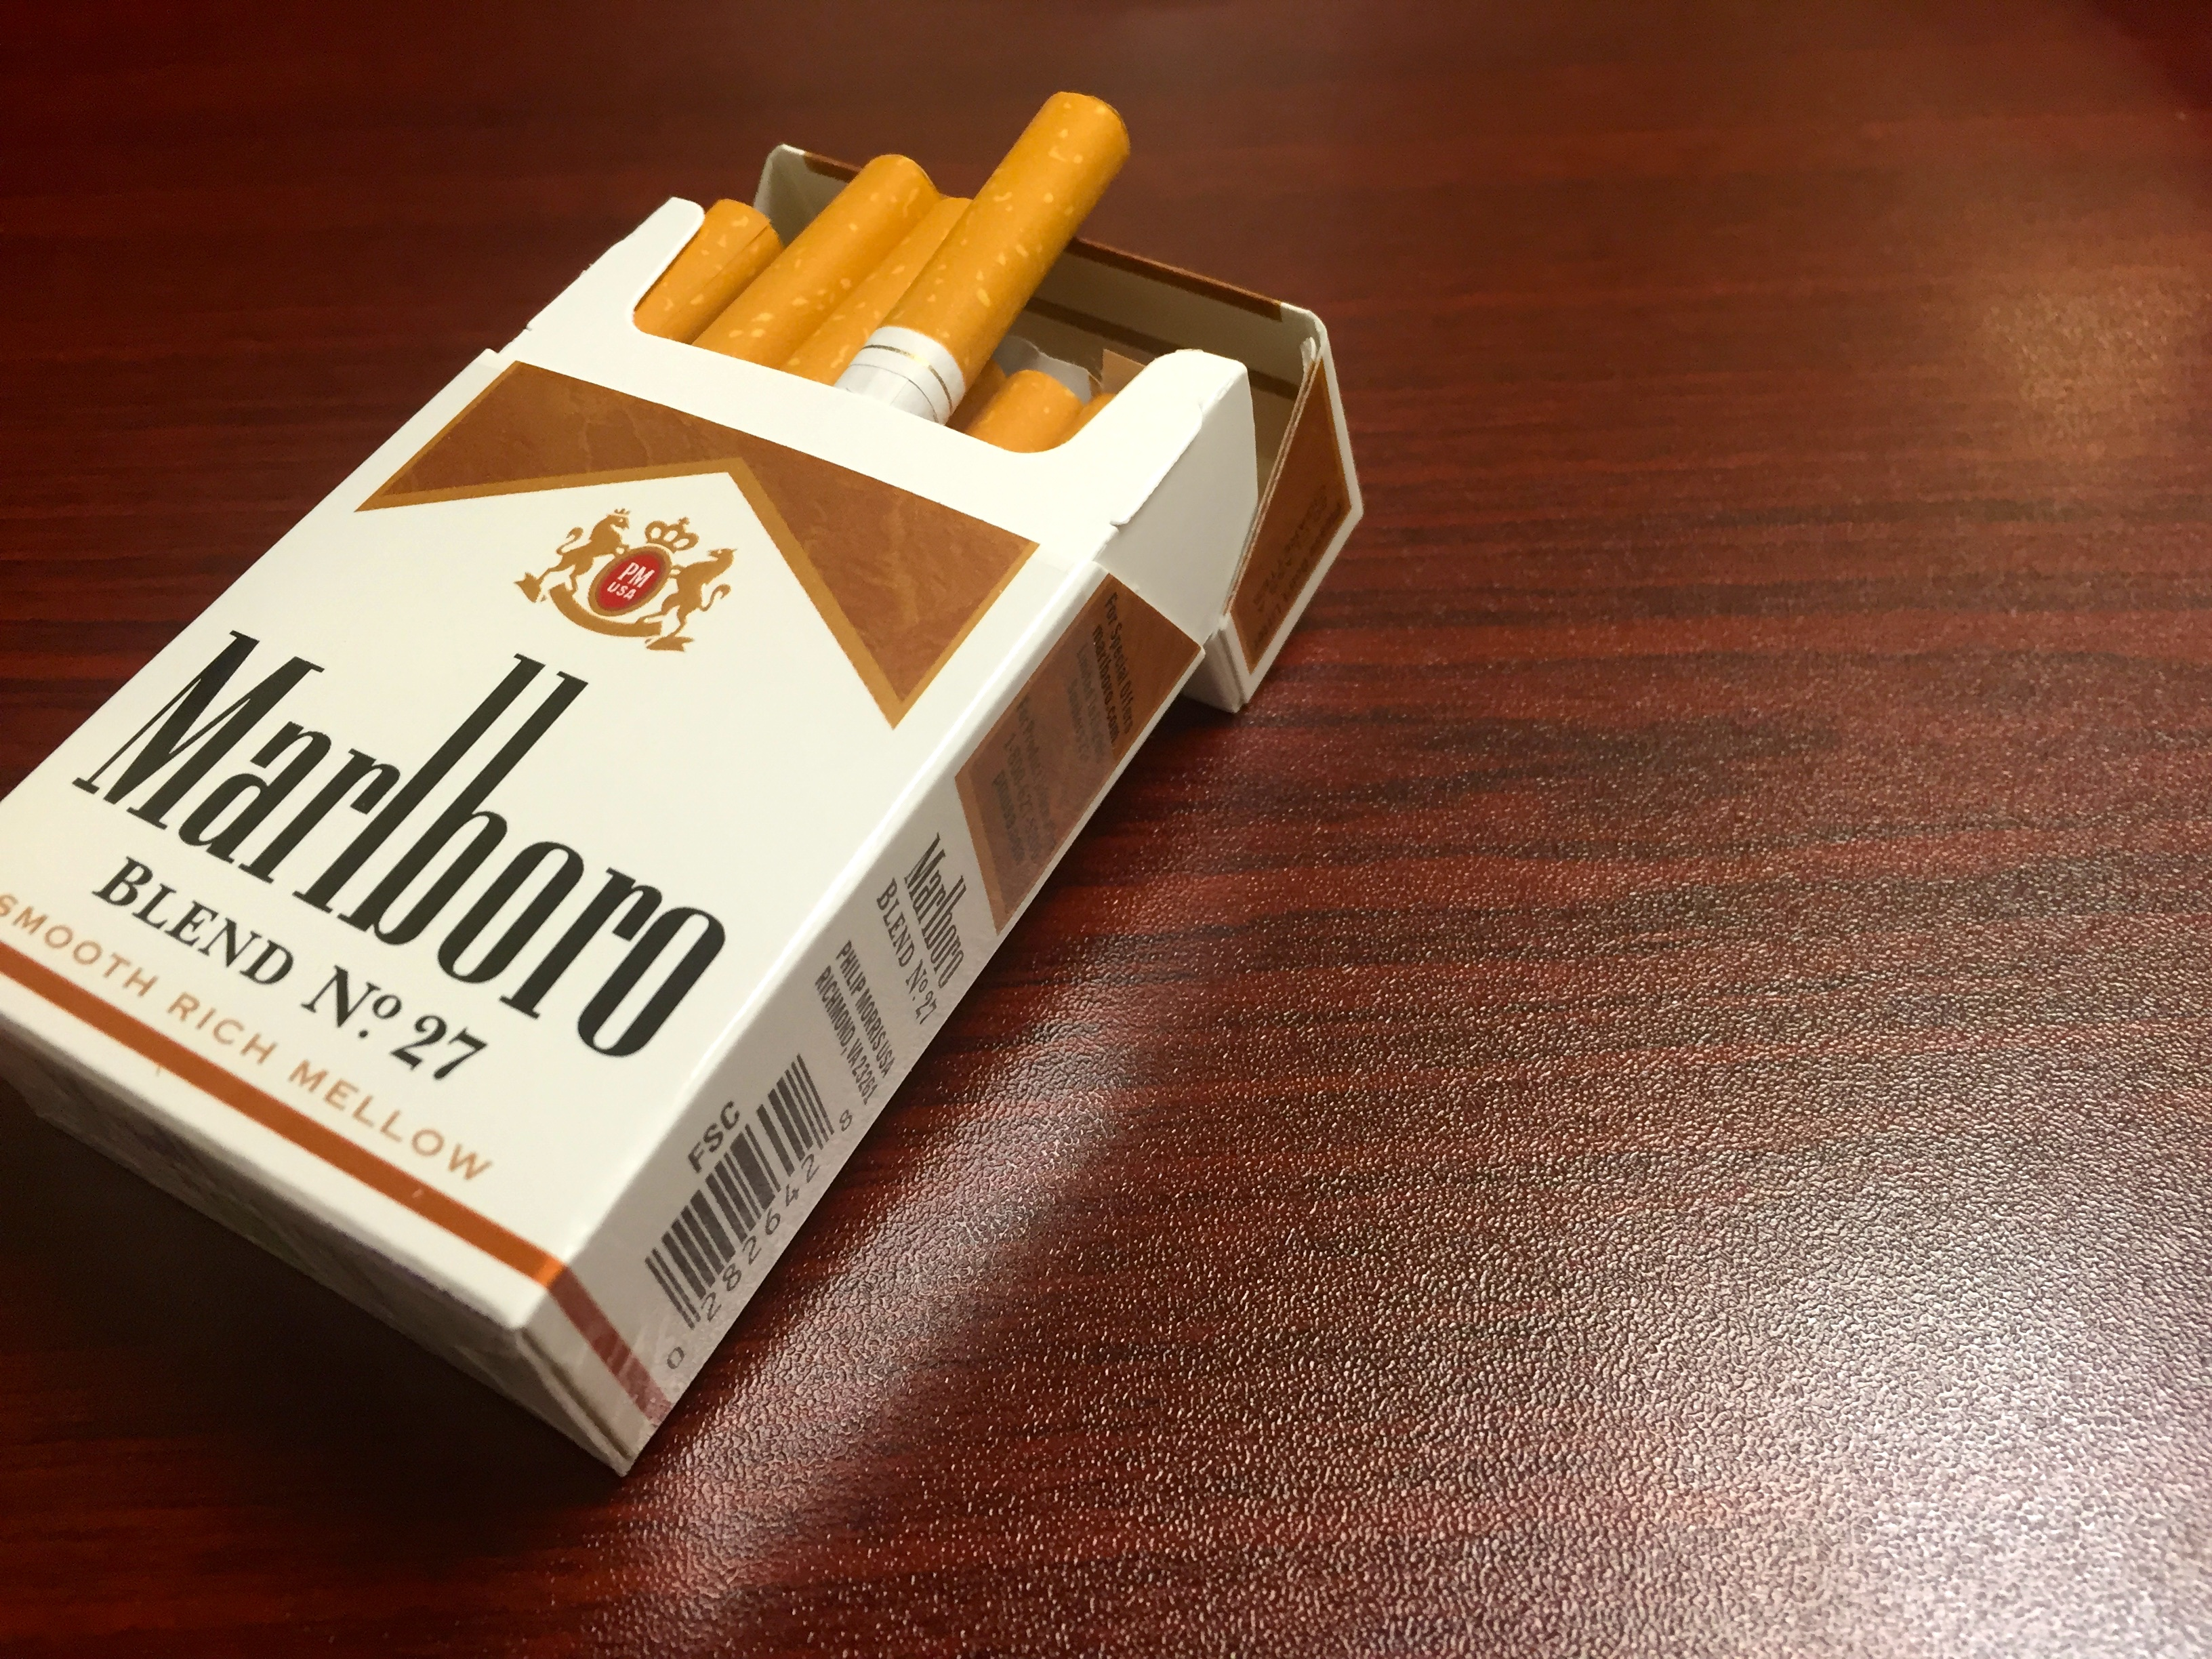 pack of cigarettes Marlboro lights